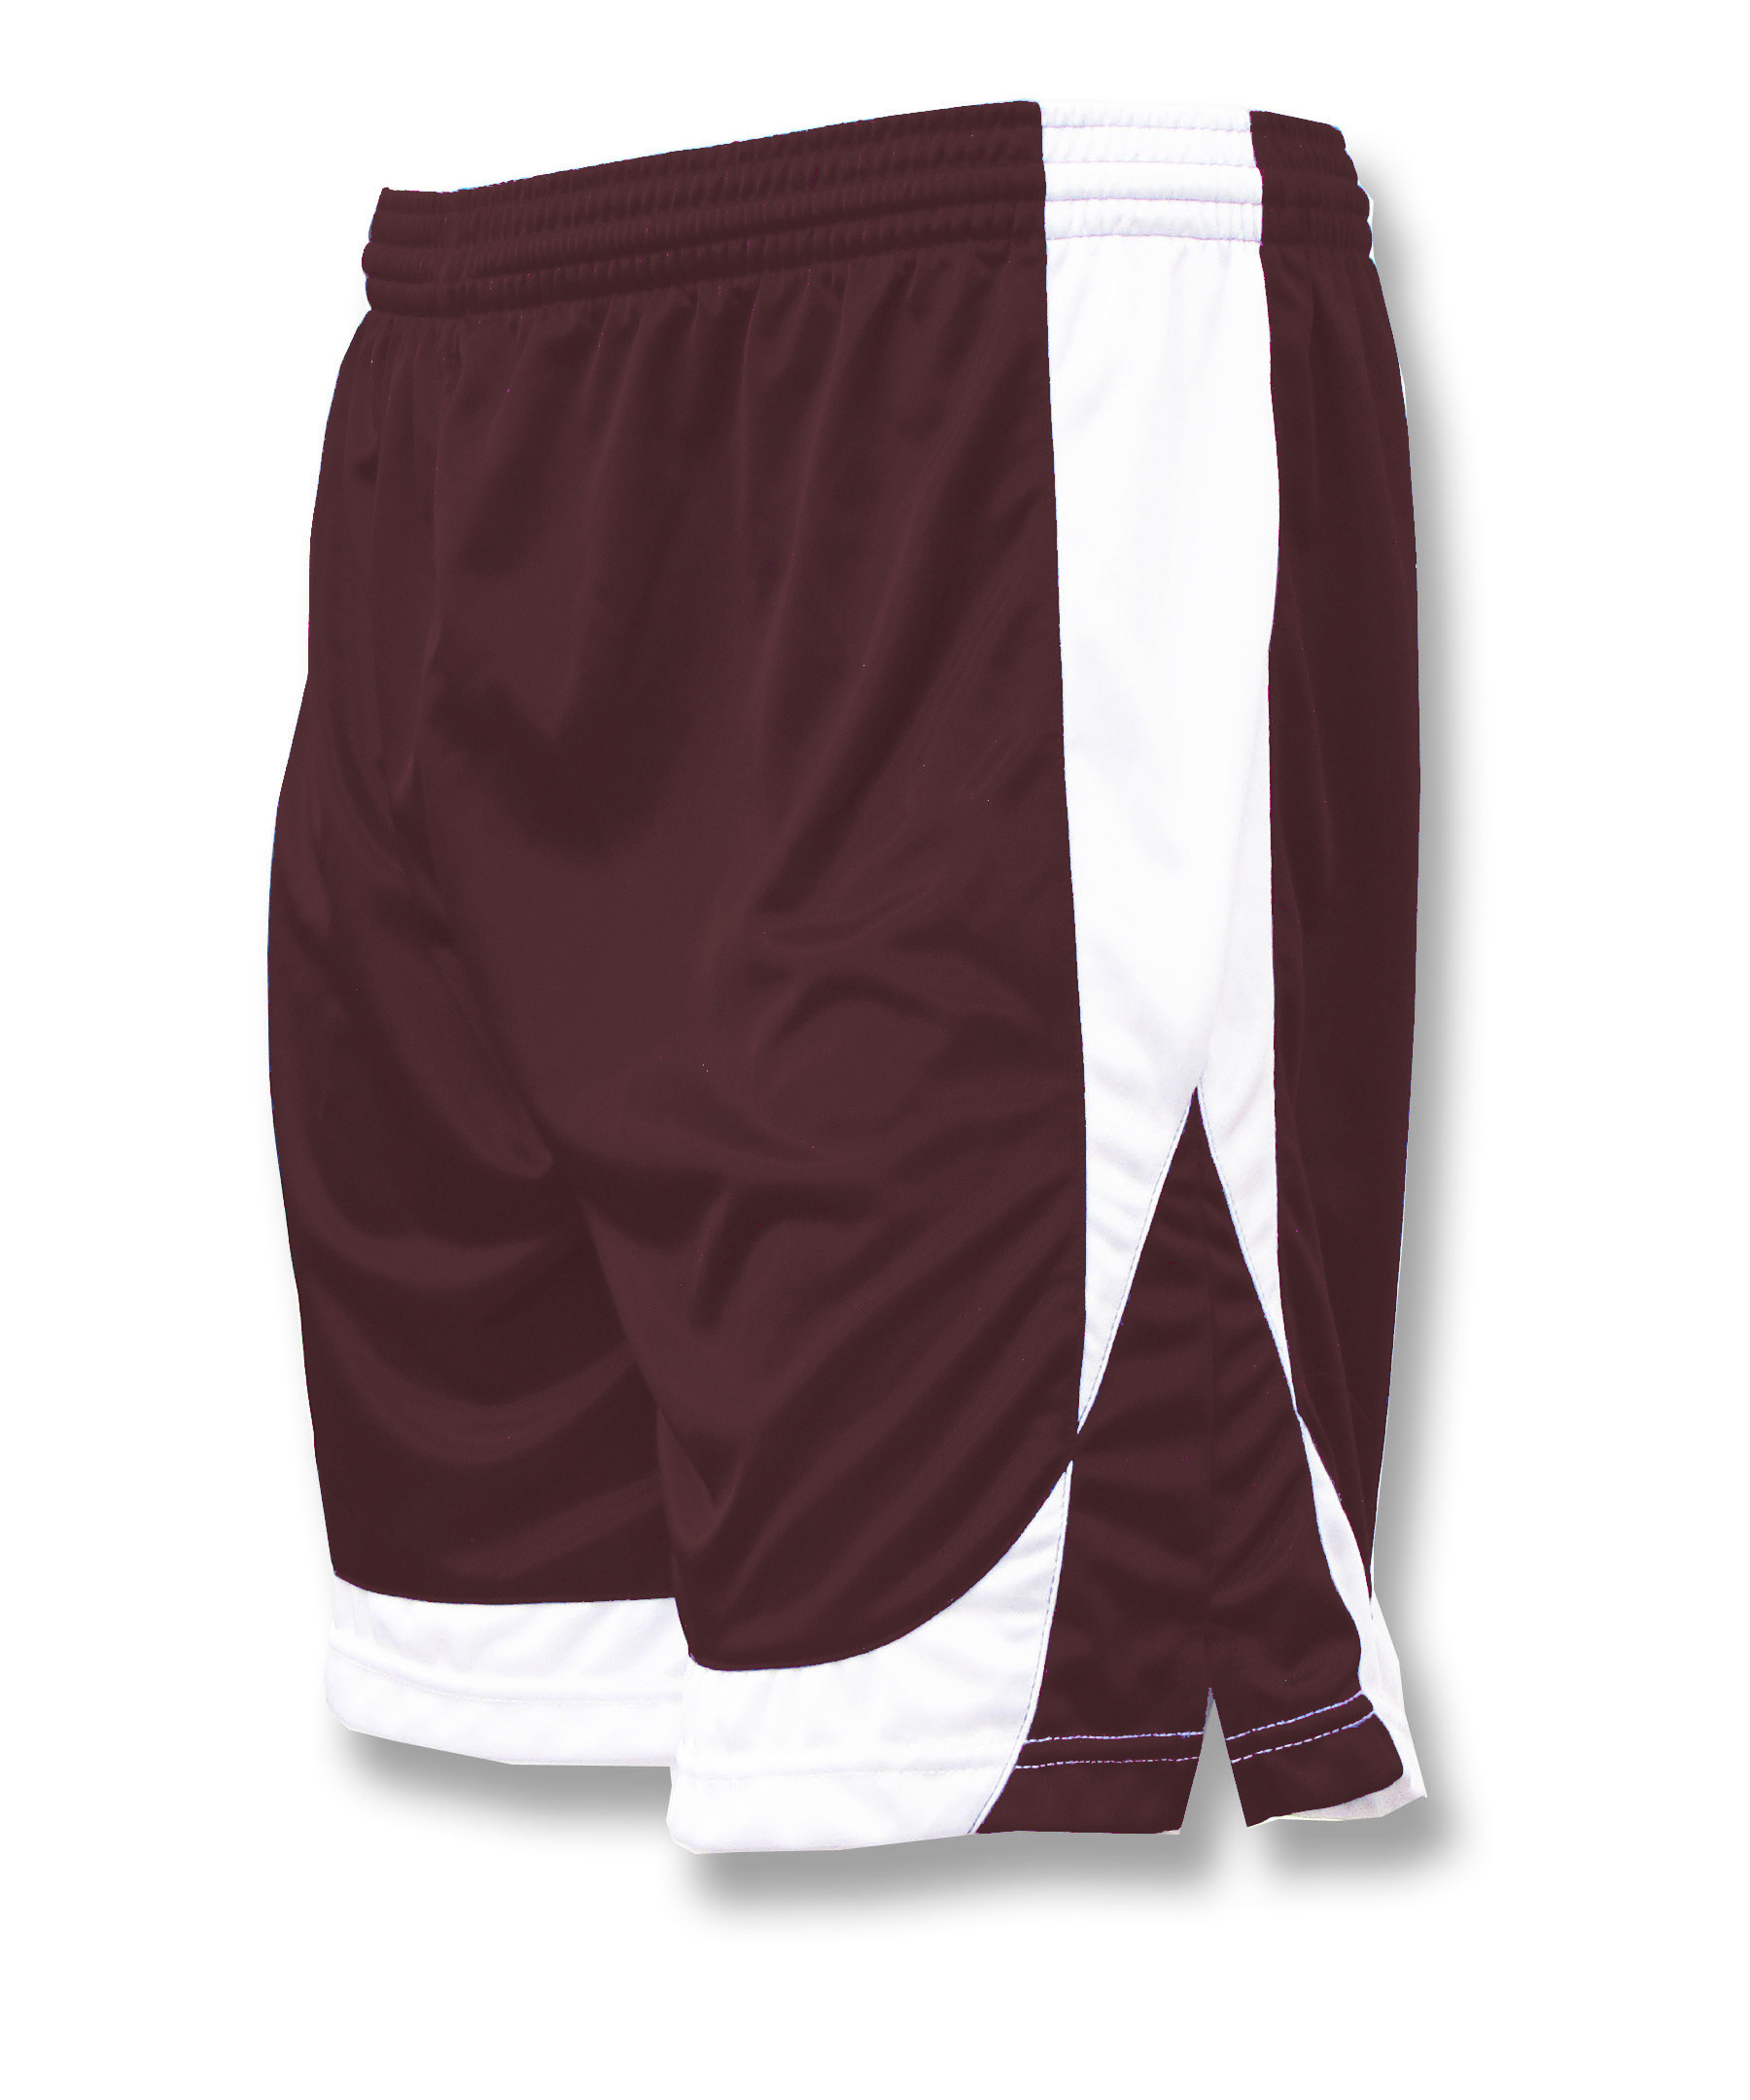 Omega soccer shorts in maroon/white by Code Four Athletics